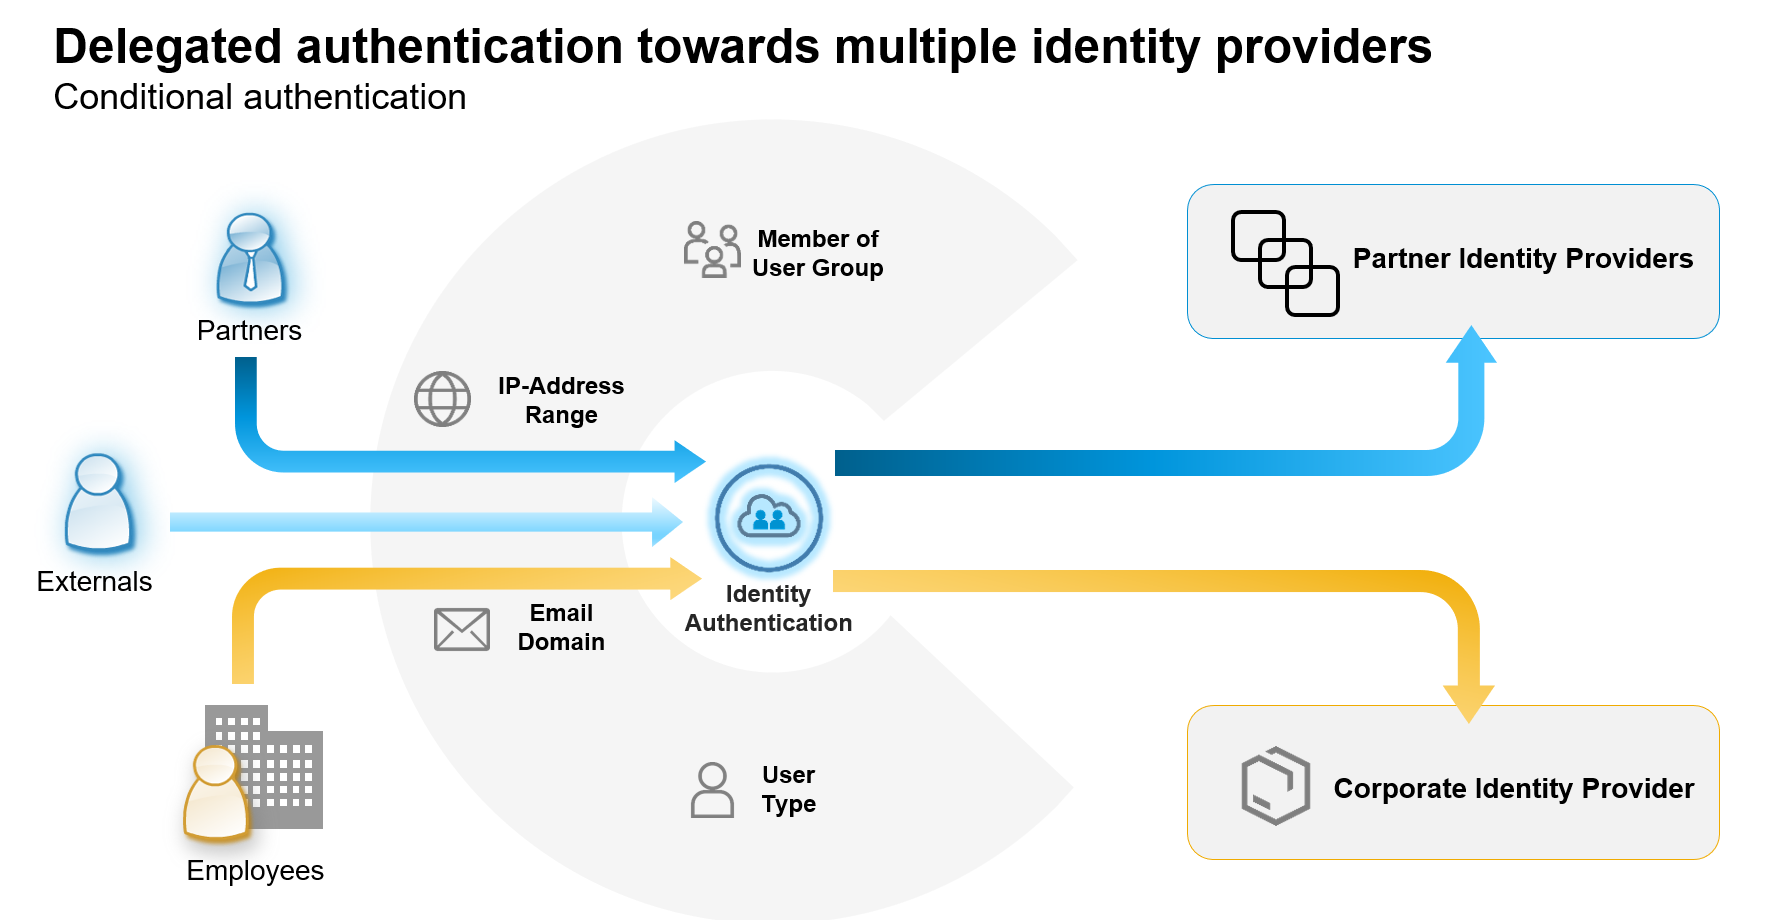 Conditional%20authentication%3A%20delegating%20the%20user%20to%20%u2018his%u2019%20identity%20provider